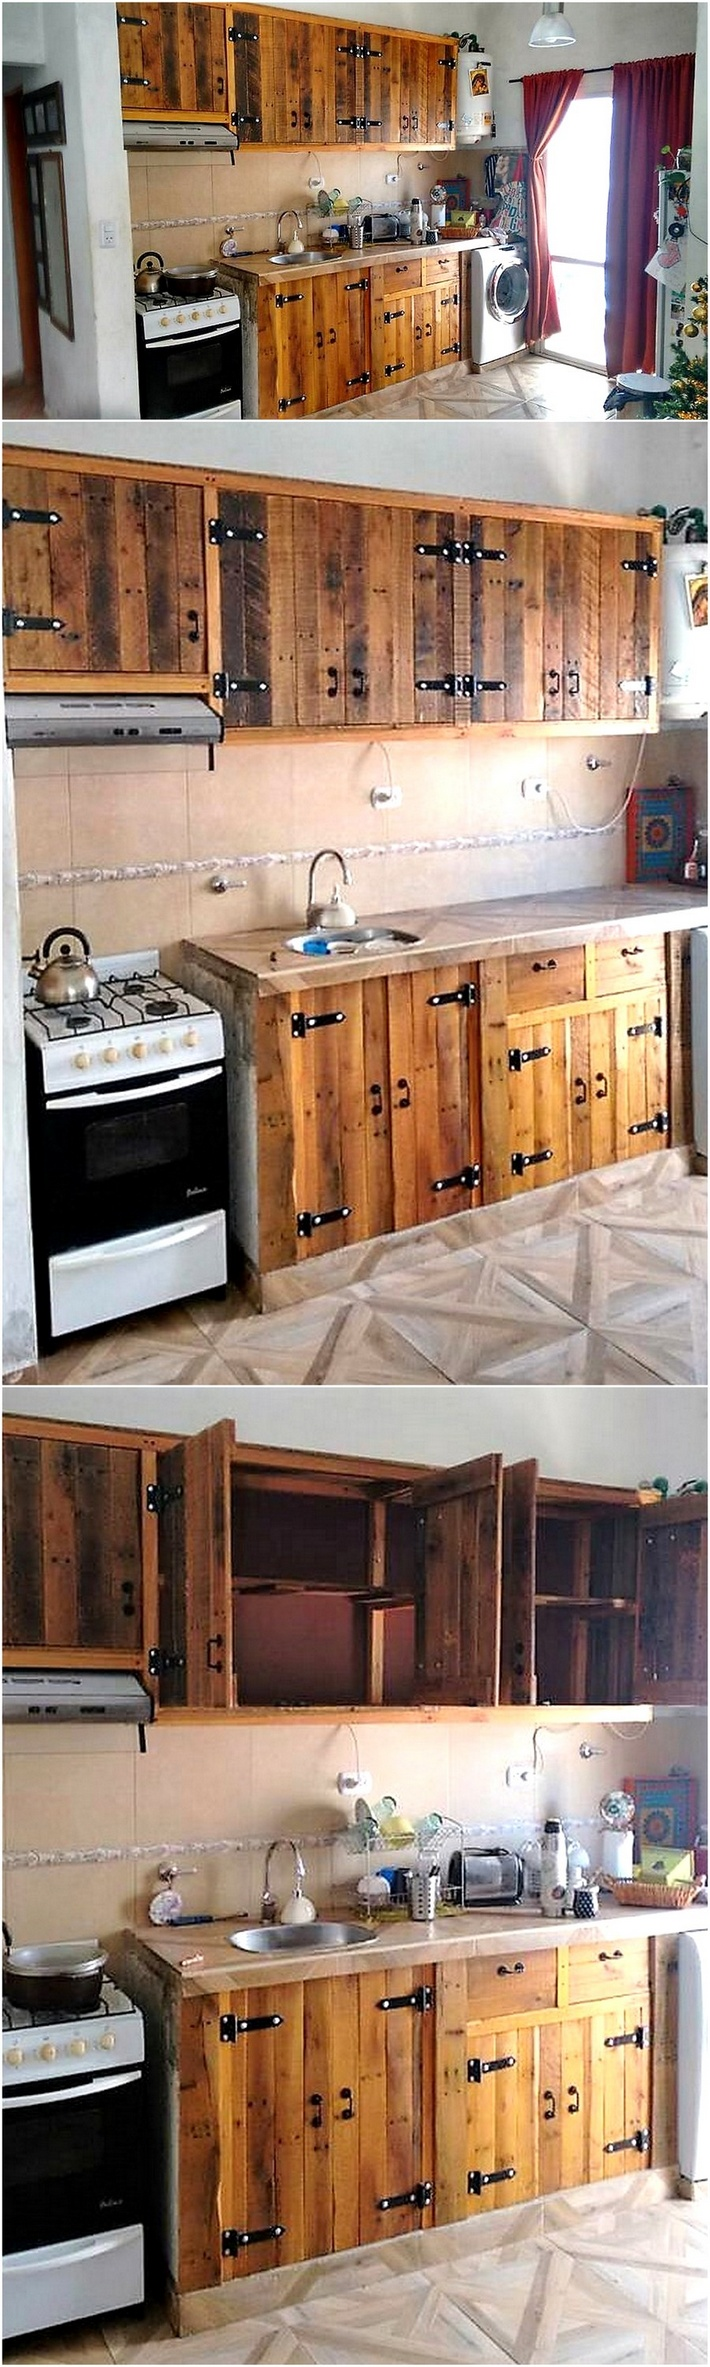 kitchen cabinets made from pallets choose one idea for your next diy pallet projects wood 20757